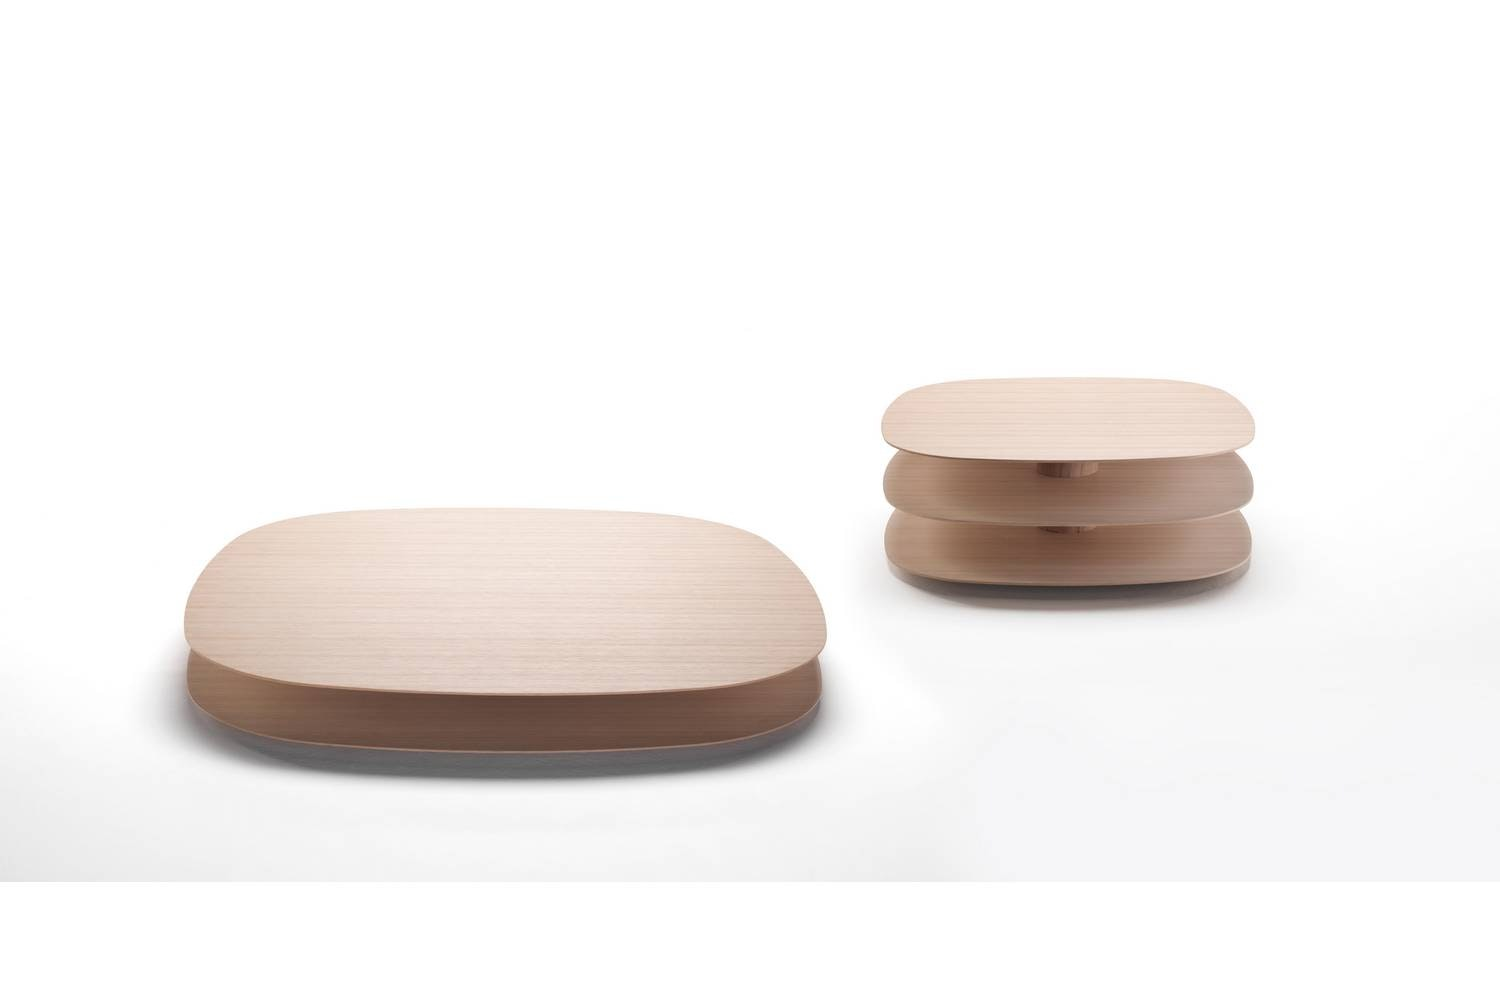 Strato Coffee Table by Victor Carrasco for Living Divani